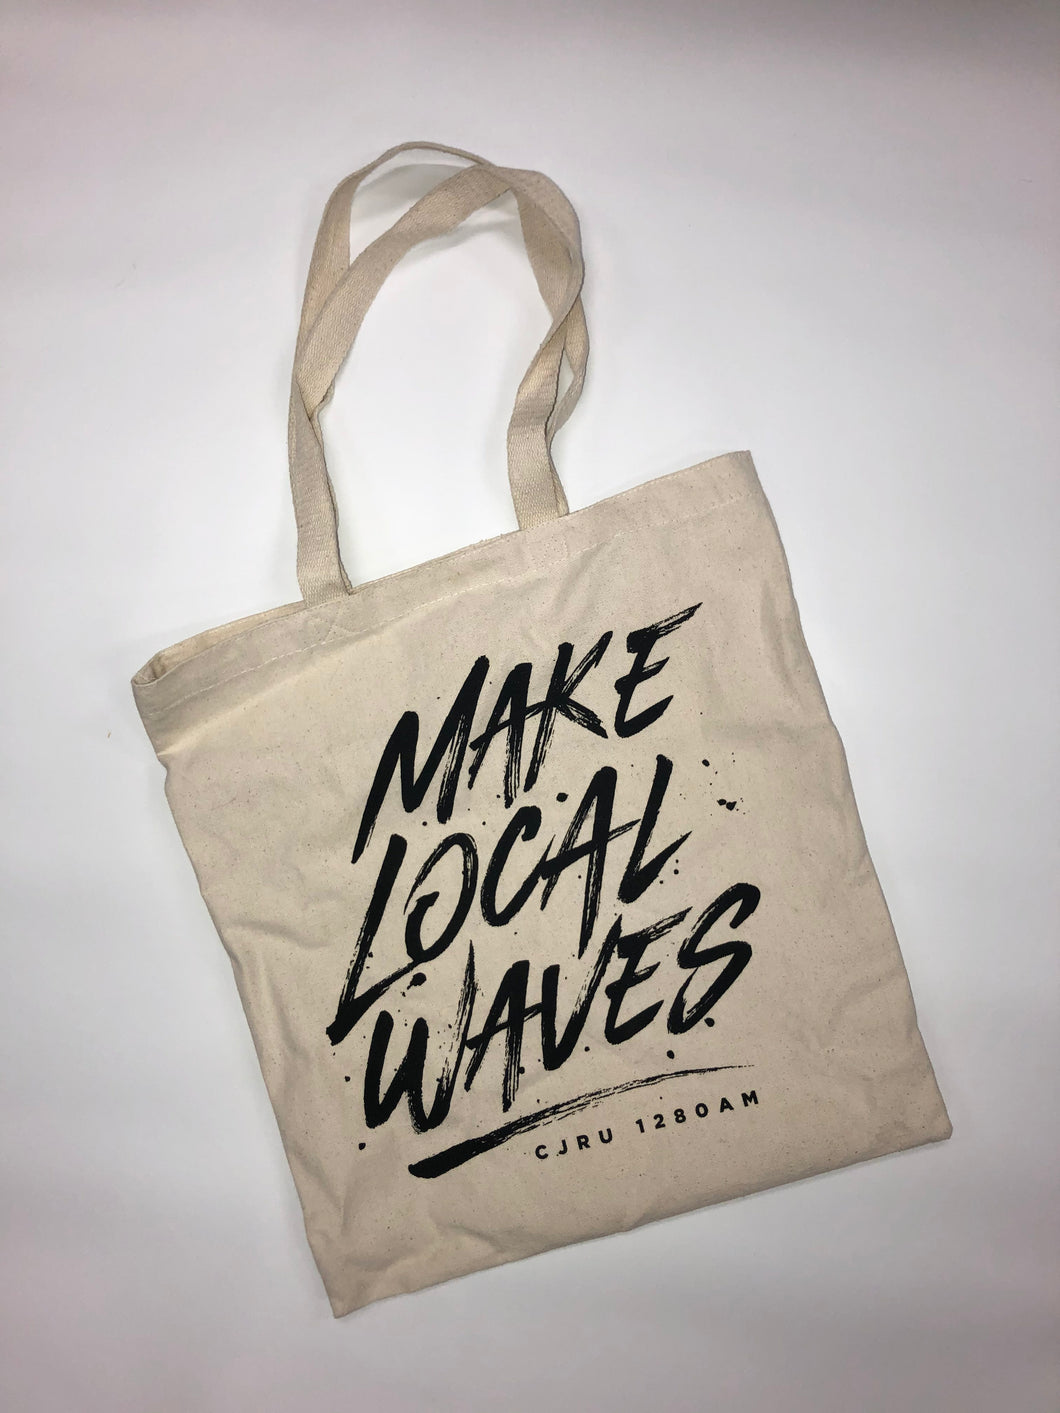 Make Local Waves Tote